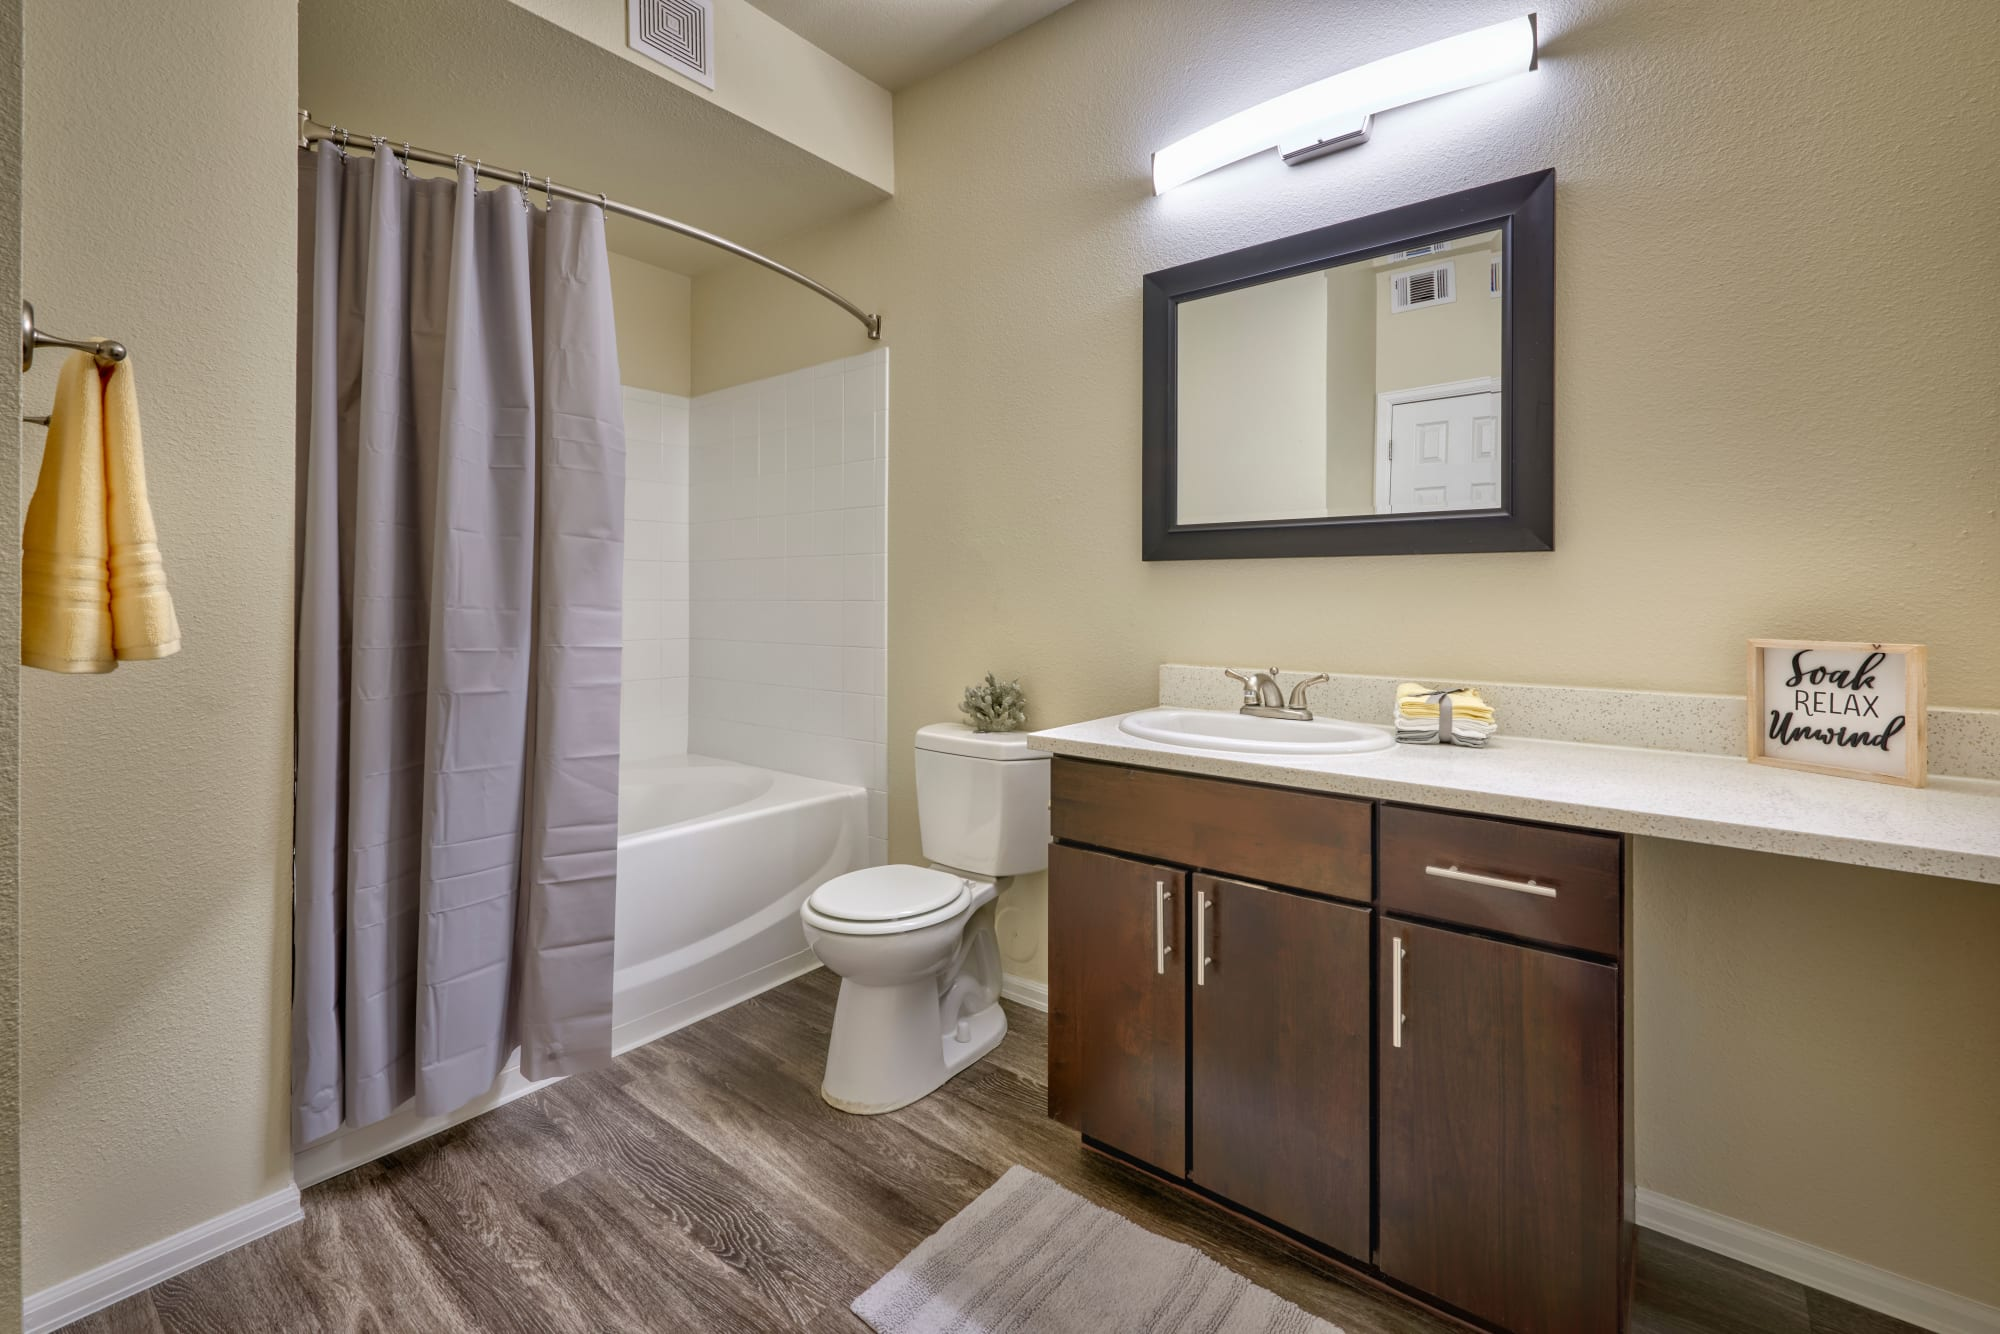 A bathroom with a bathtub at The Crossings at Bear Creek Apartments in Lakewood, Colorado